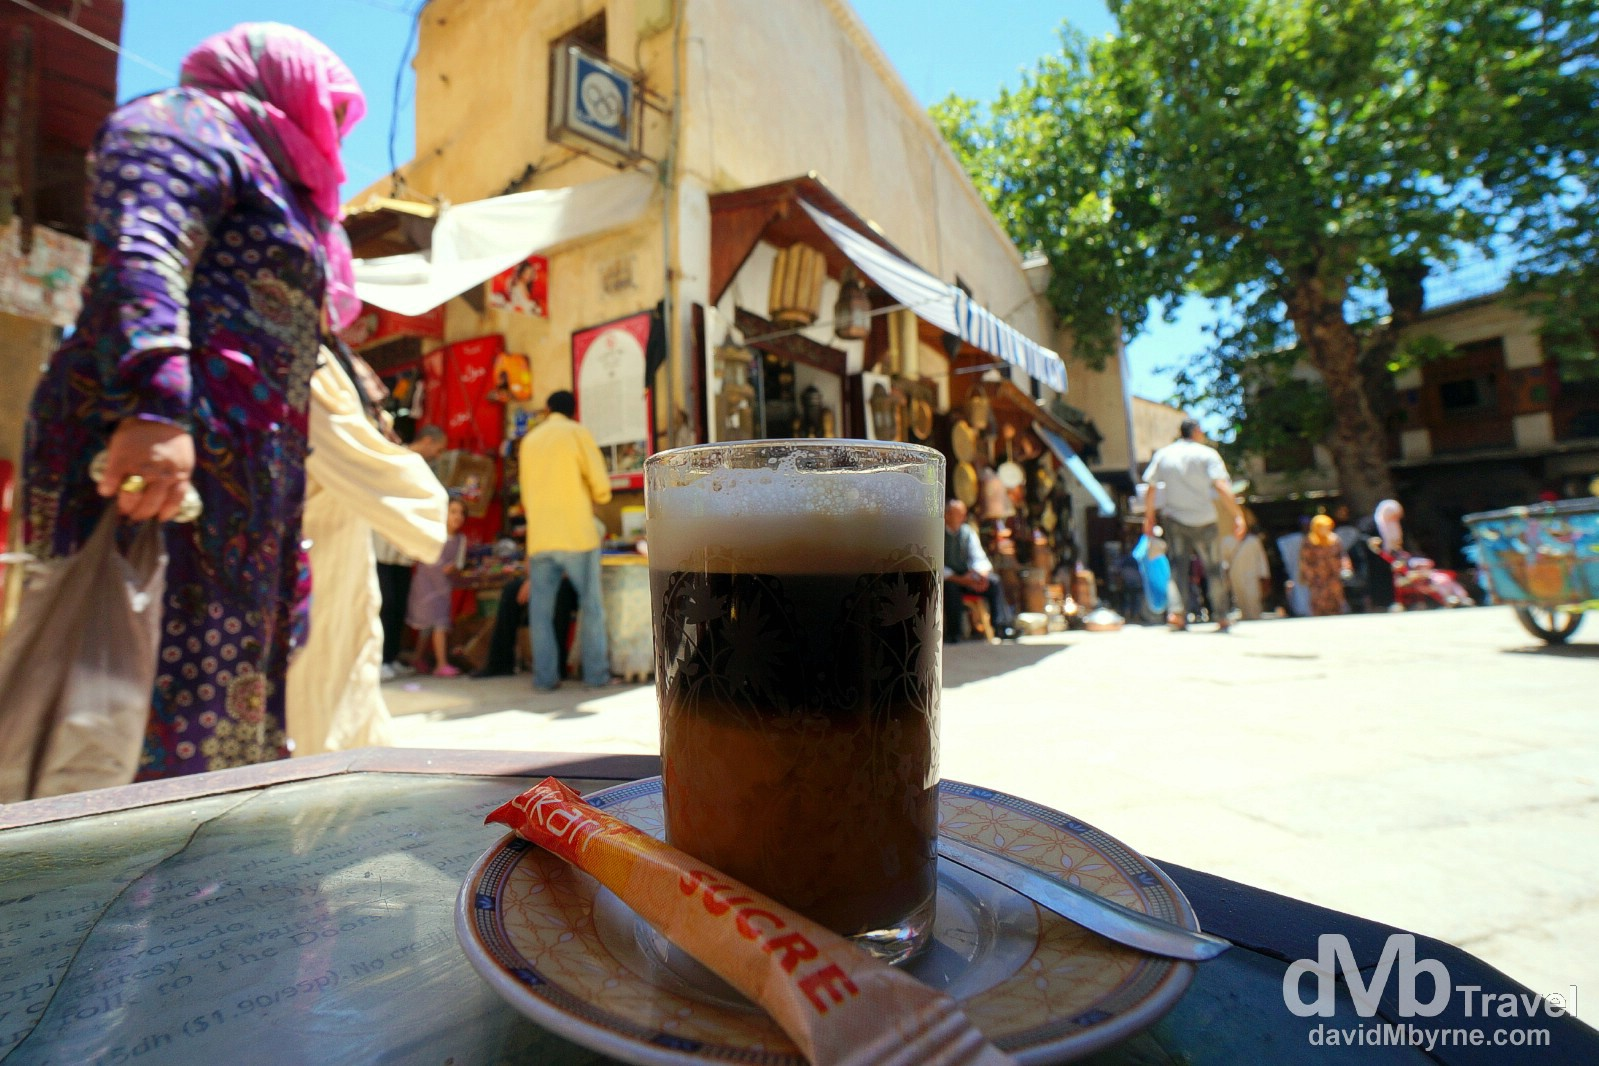 Cafe au lait in Cremerie la Place, Place Saffarine, Fes el Bali, Fes, Morocco. May 29th, 2014.